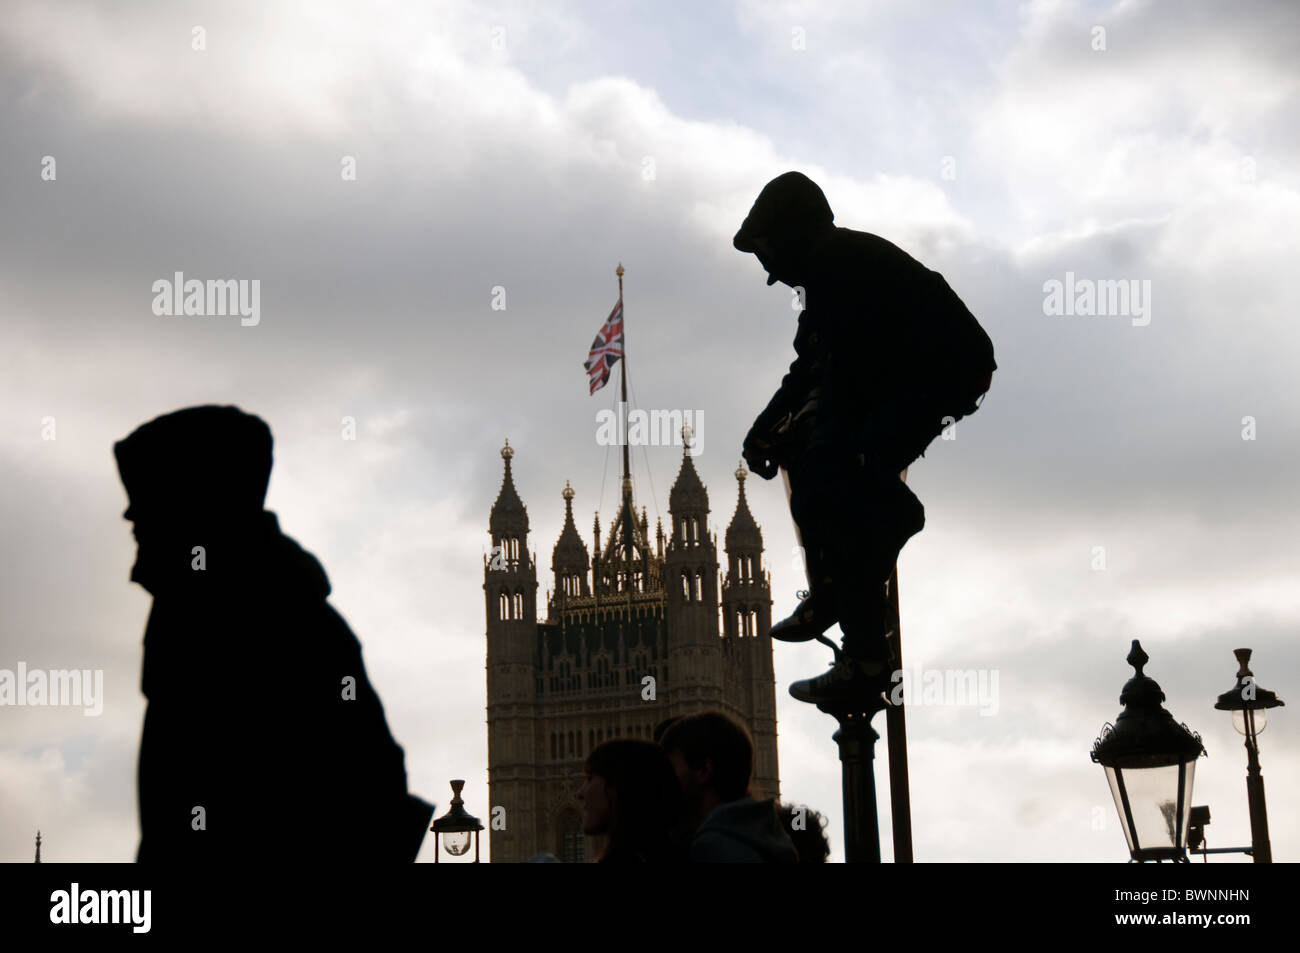 Student Protest about increase in fees ended in violence and police kettling in Whitehall  London 24.11.10 - Stock Image